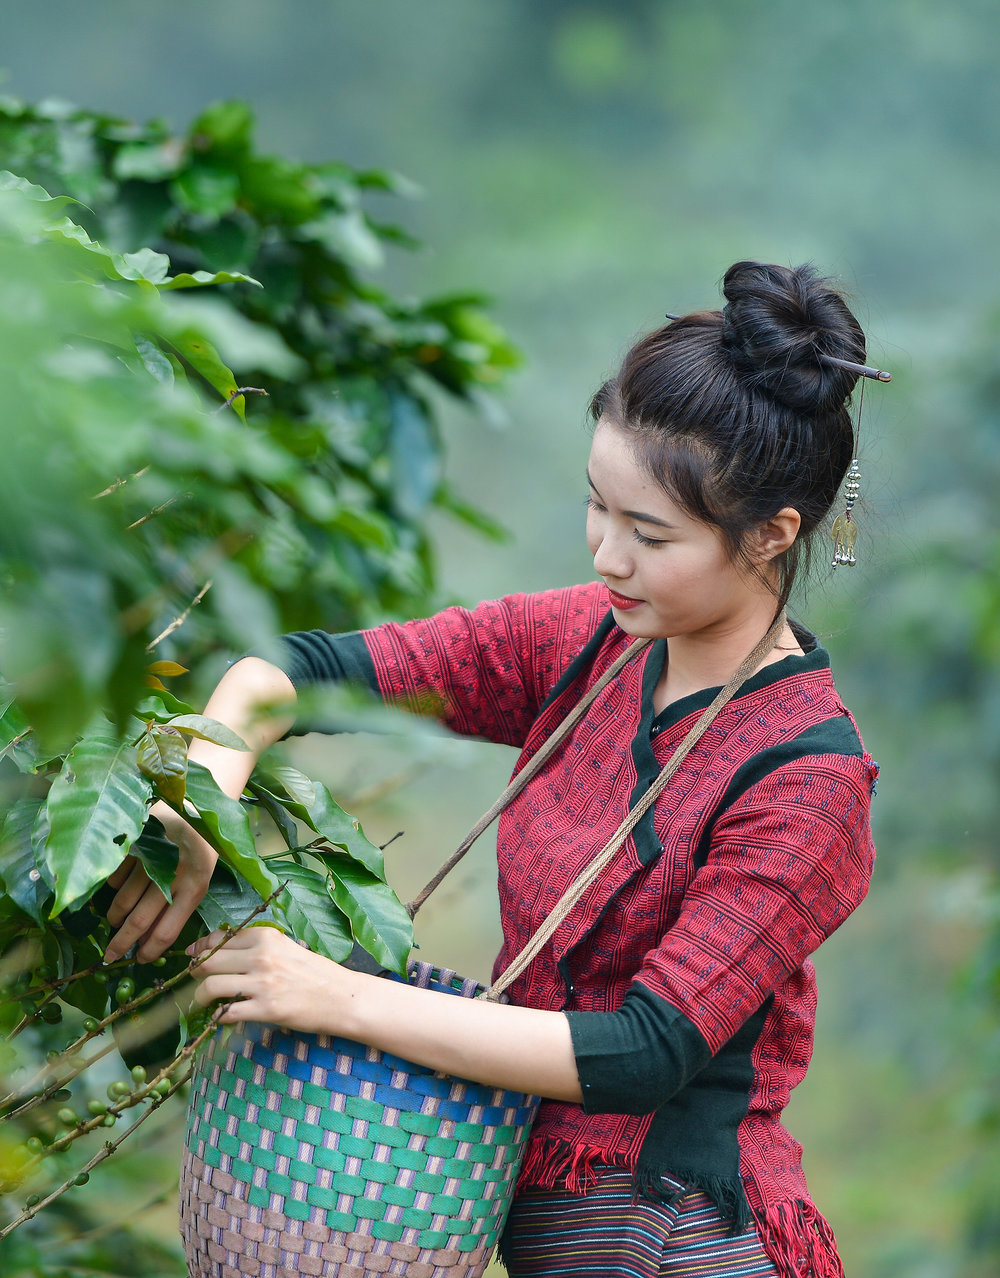 stock-photo-beautiful-girls-laos-is-harvesting-coffee-berries-in-her-coffee-farm-at-pakse-laos-girl-southeast-549192028.jpg